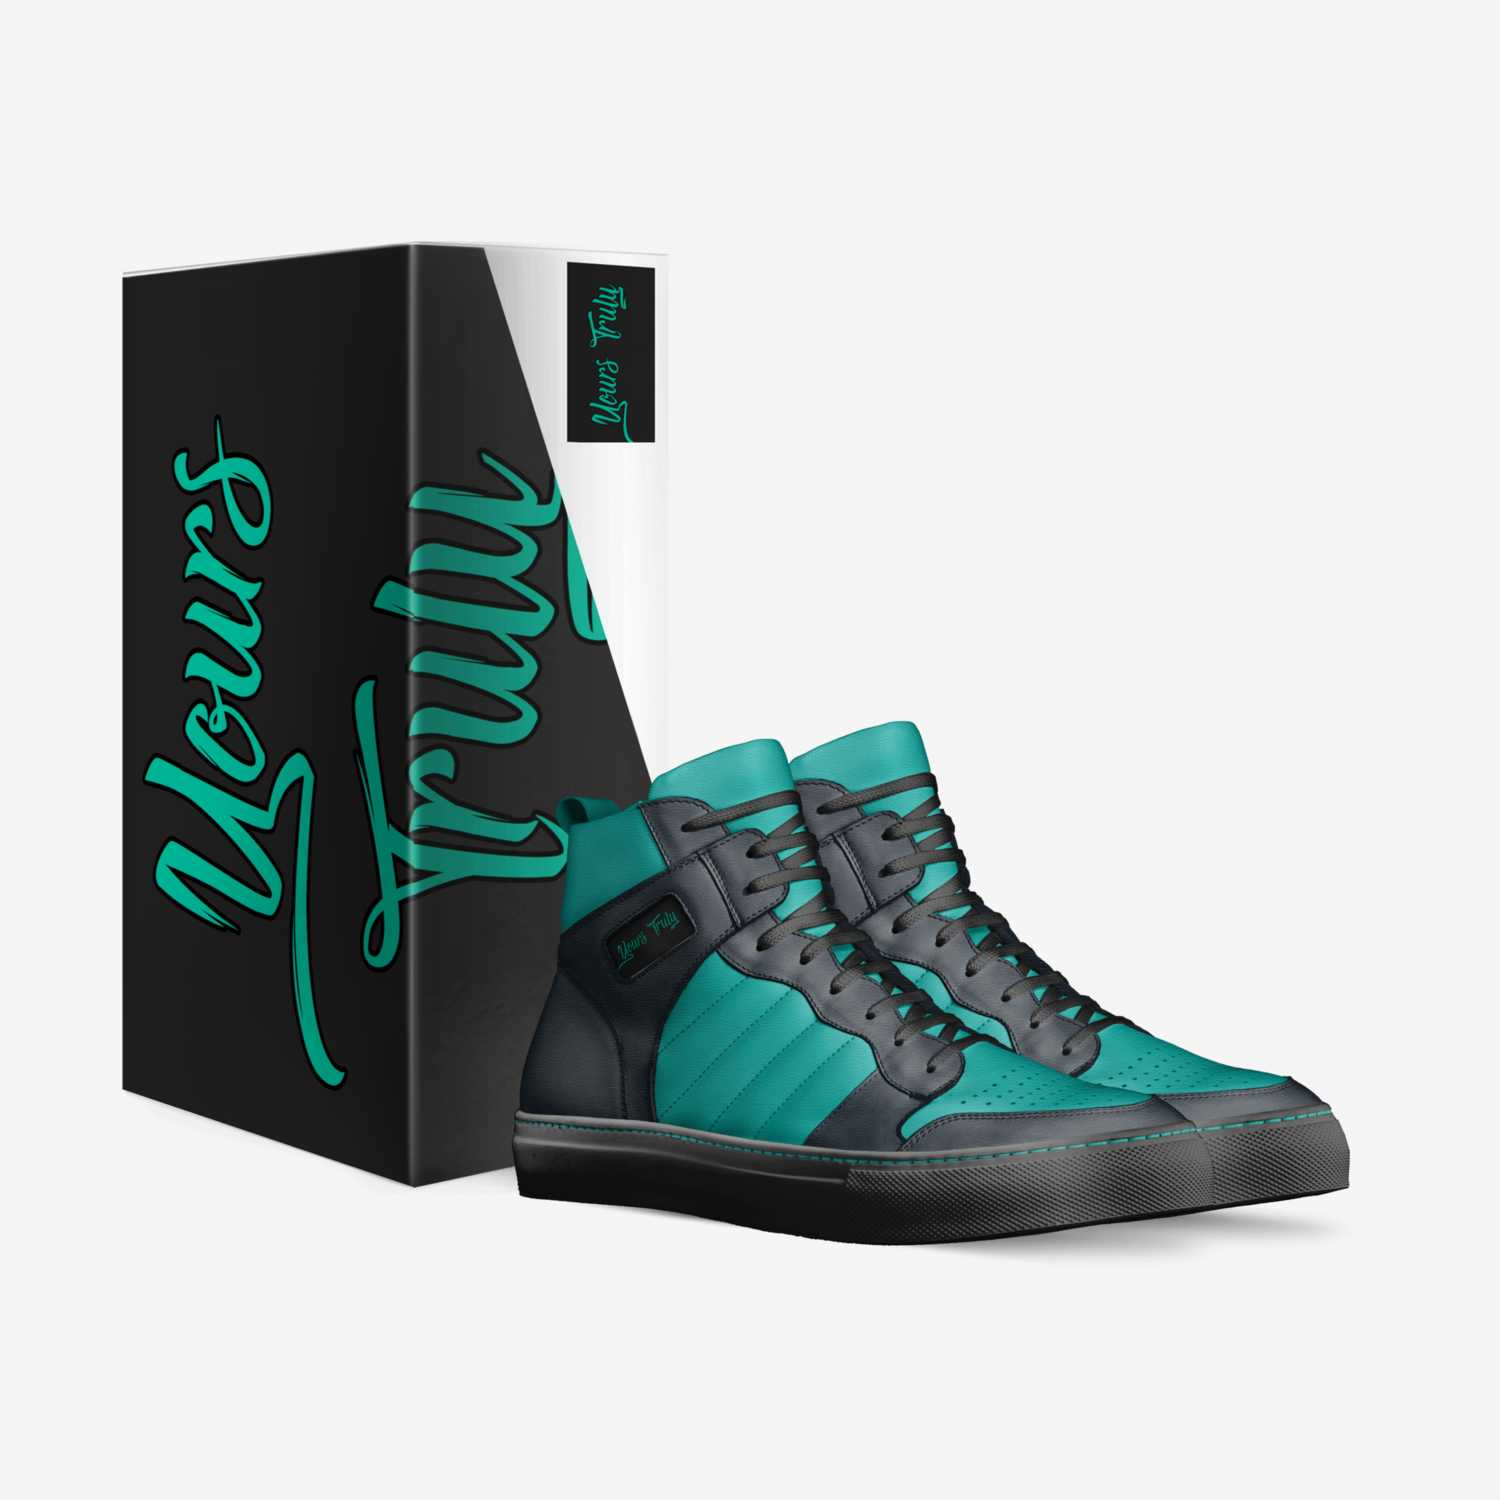 Yours Truly custom made in Italy shoes by James Reese | Box view